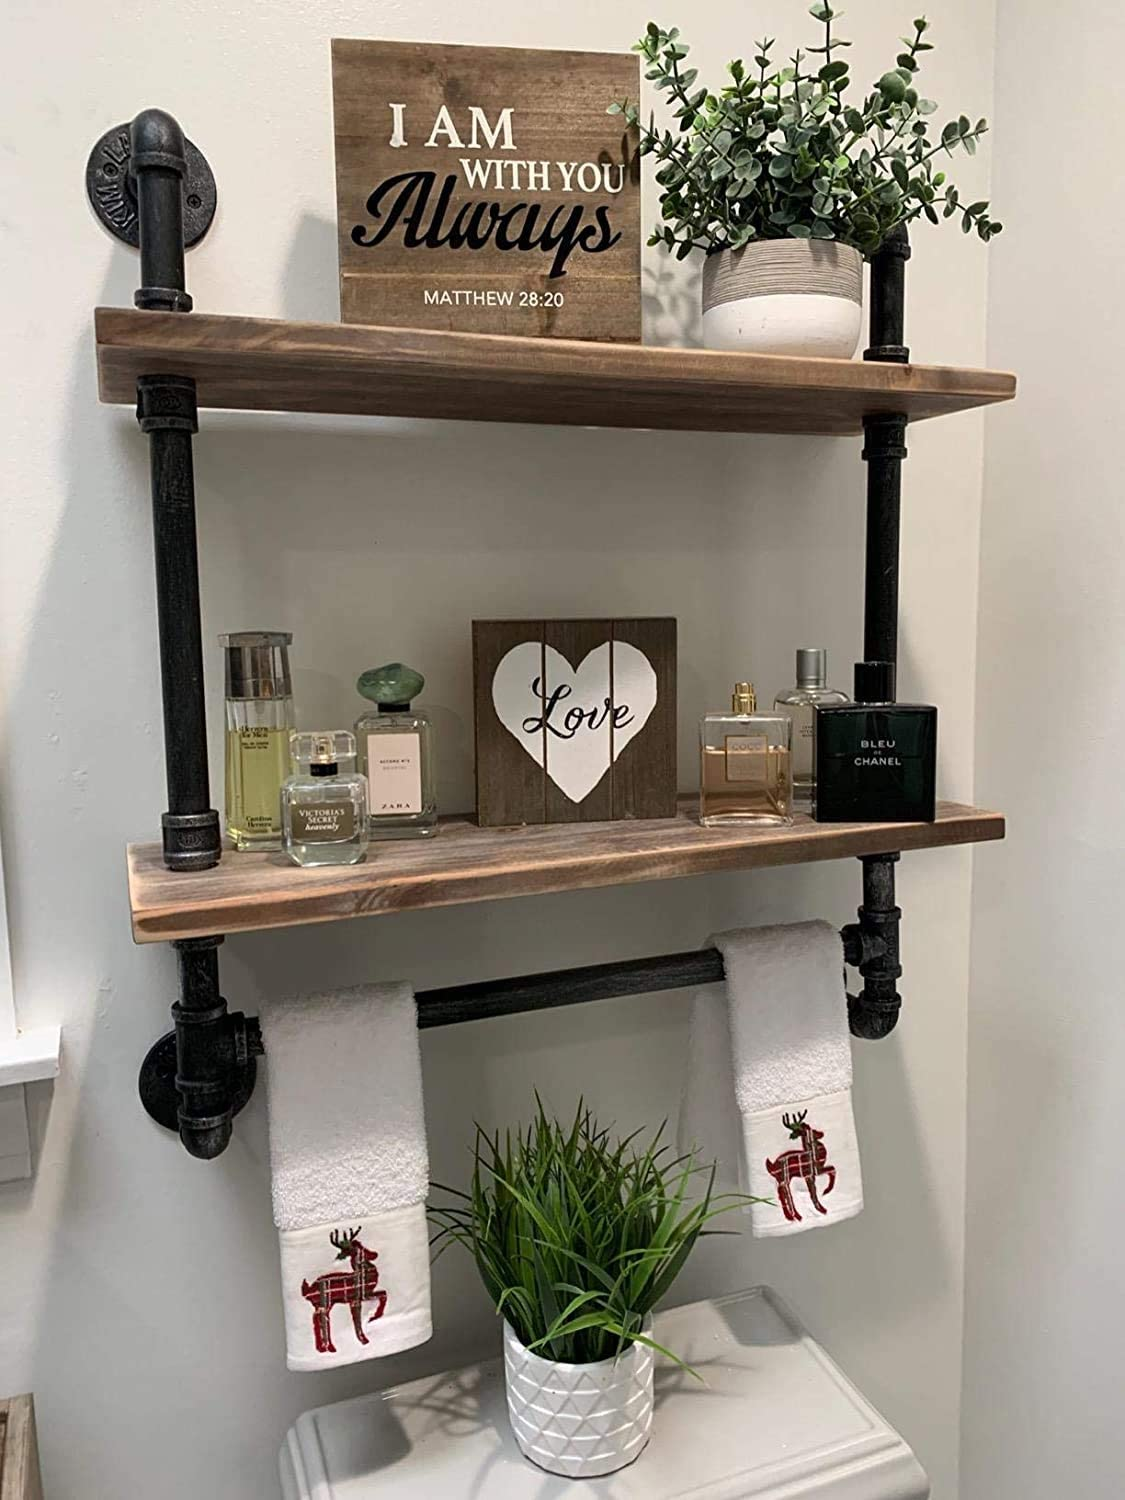 Industrial Pipe Bathroom Wall Mounted Shelves With Towel Holder Rustic Pipe Shelving Wood Shelf With Towel Bar Pipe Floating Shelves 2 Layer 19 5 Amazon Co Uk Kitchen Home